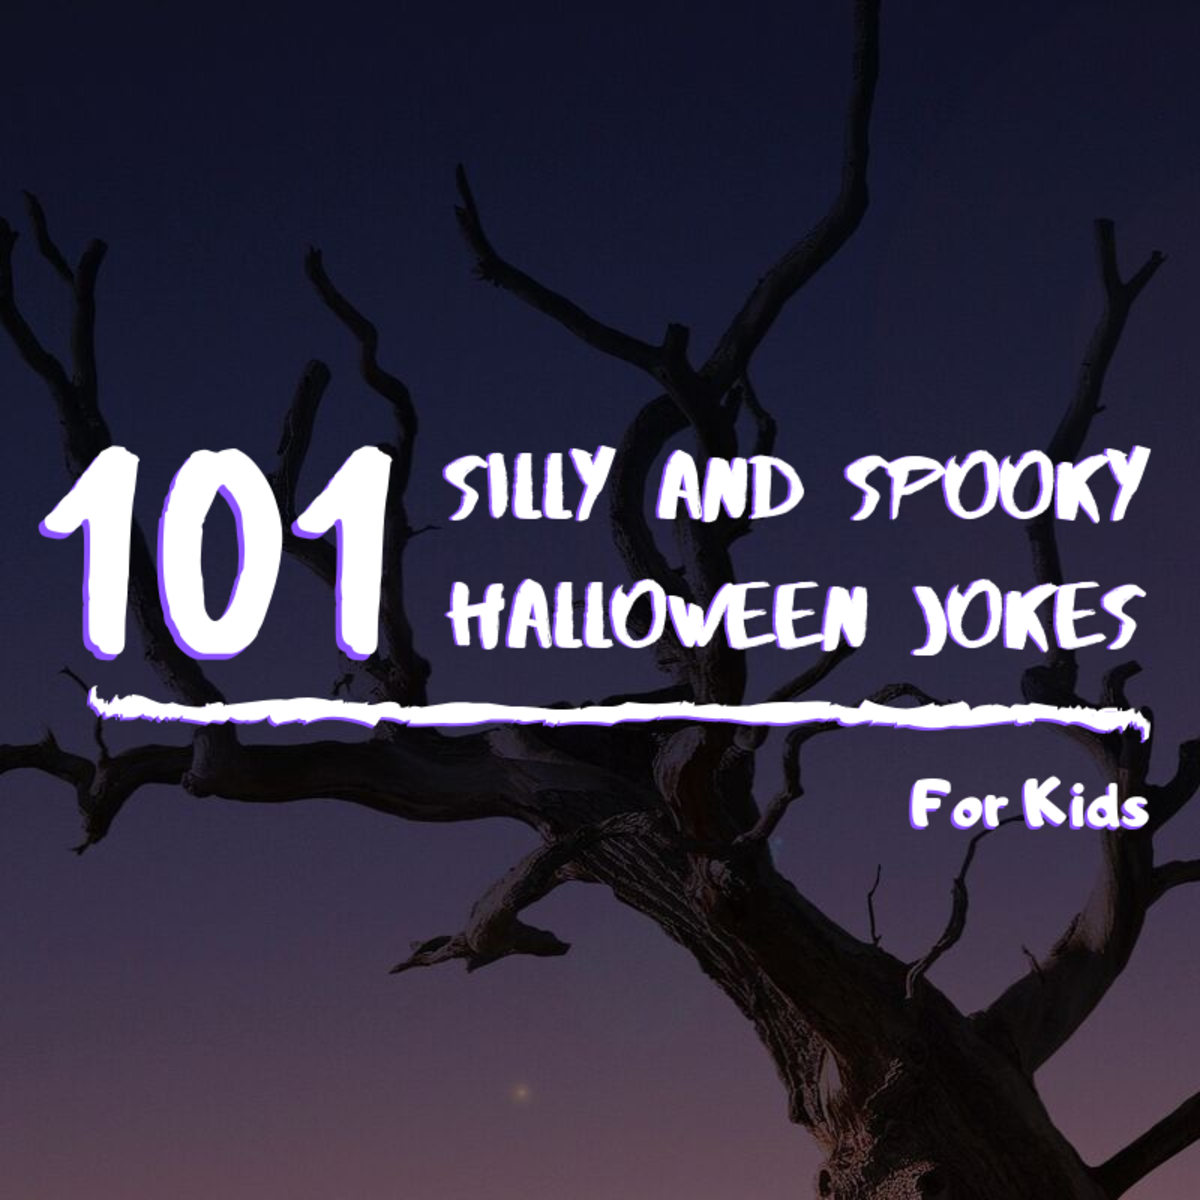 Here's a list of over 100 corny, spooky, and downright fun Halloween-themed jokes for kids.